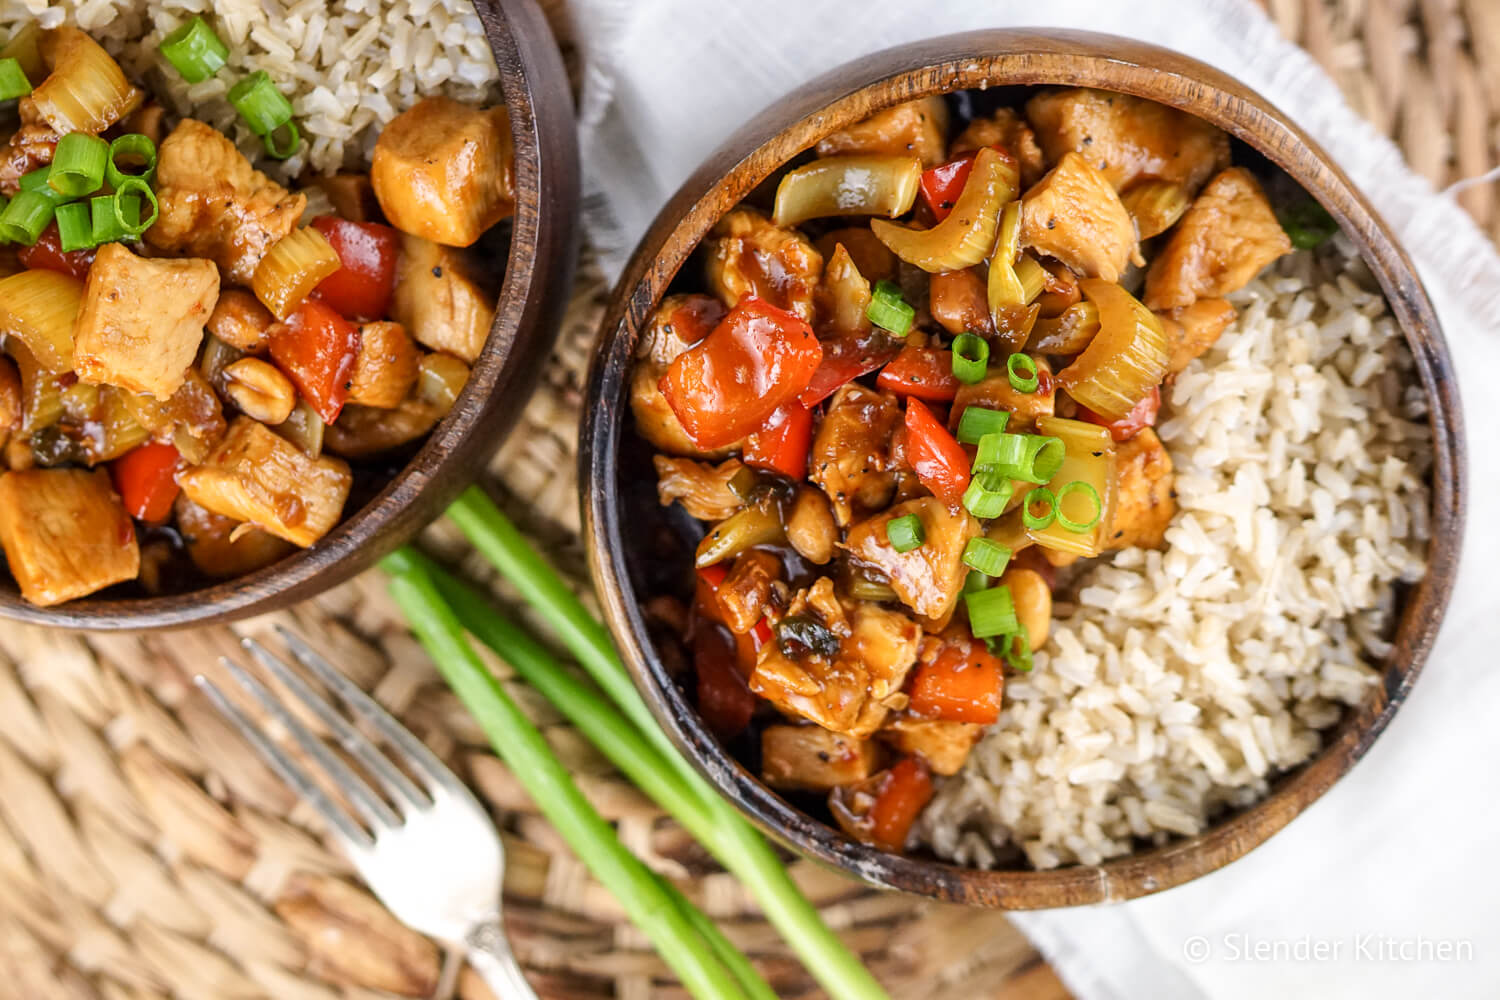 Healthy Kung Pao Chicken with brown rice in a wooden bowl.